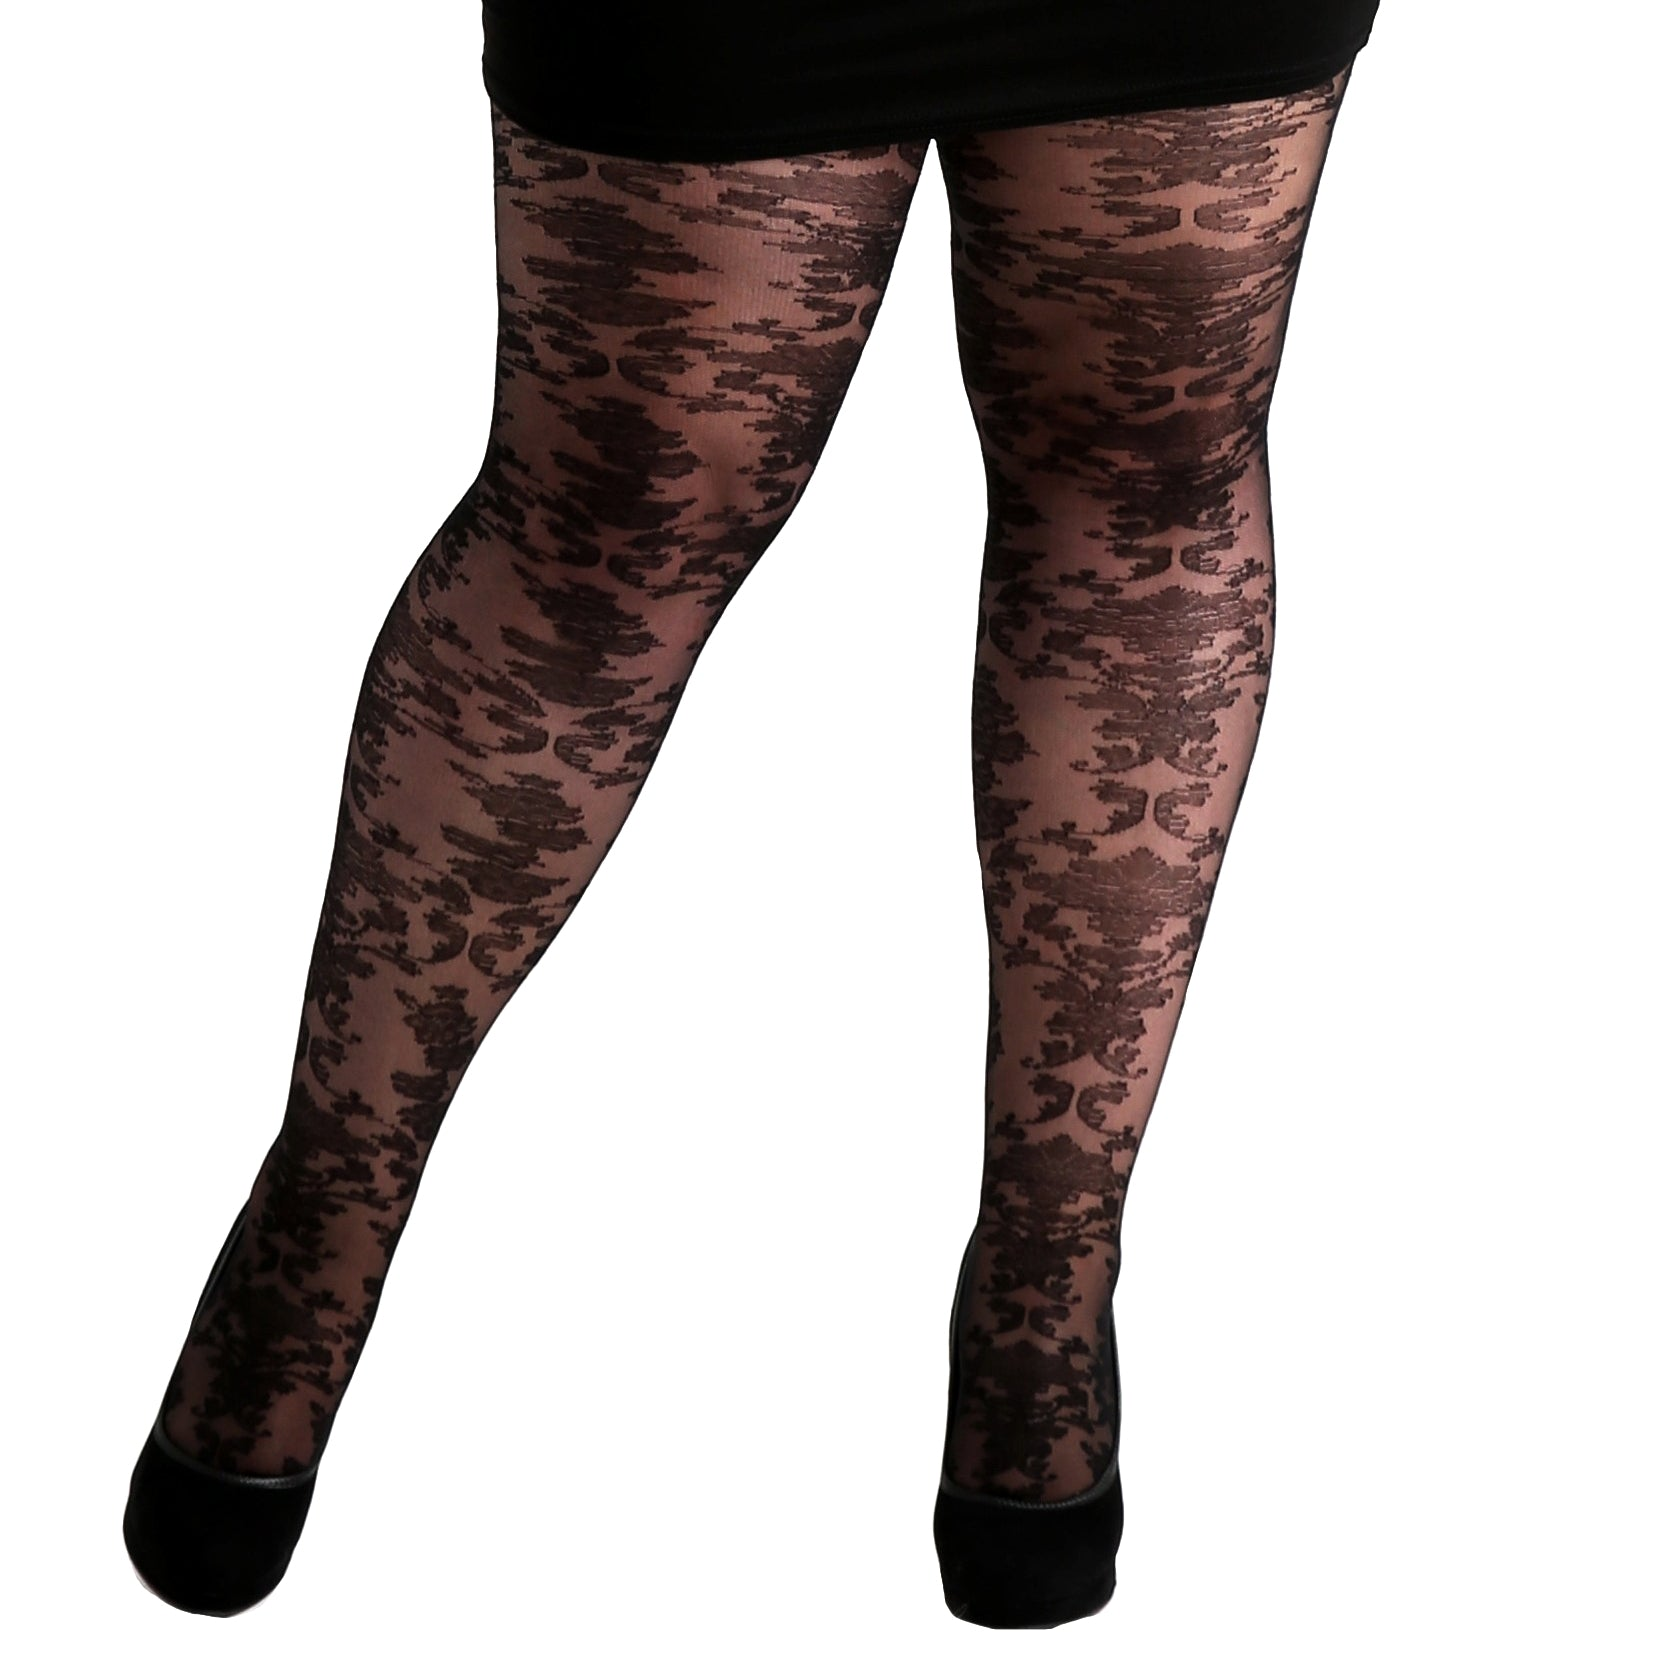 03e38adbb Lace pantyhose with a baroque pattern